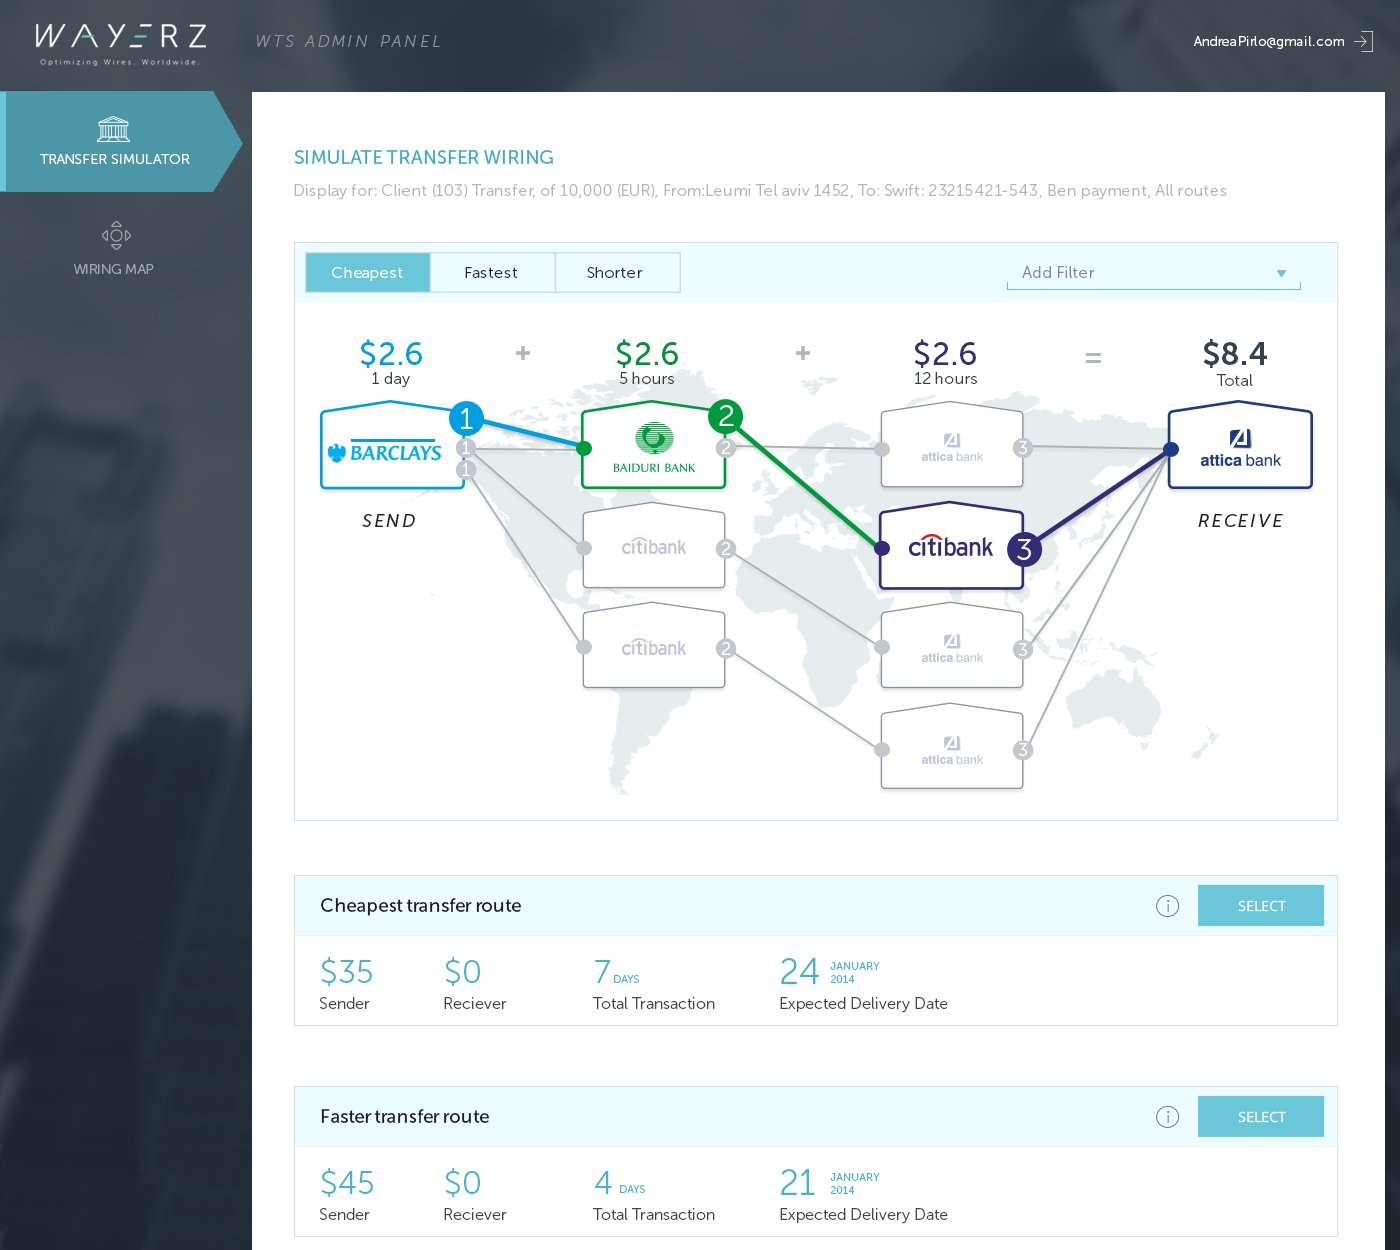 Wayerz-Dashboard-Map